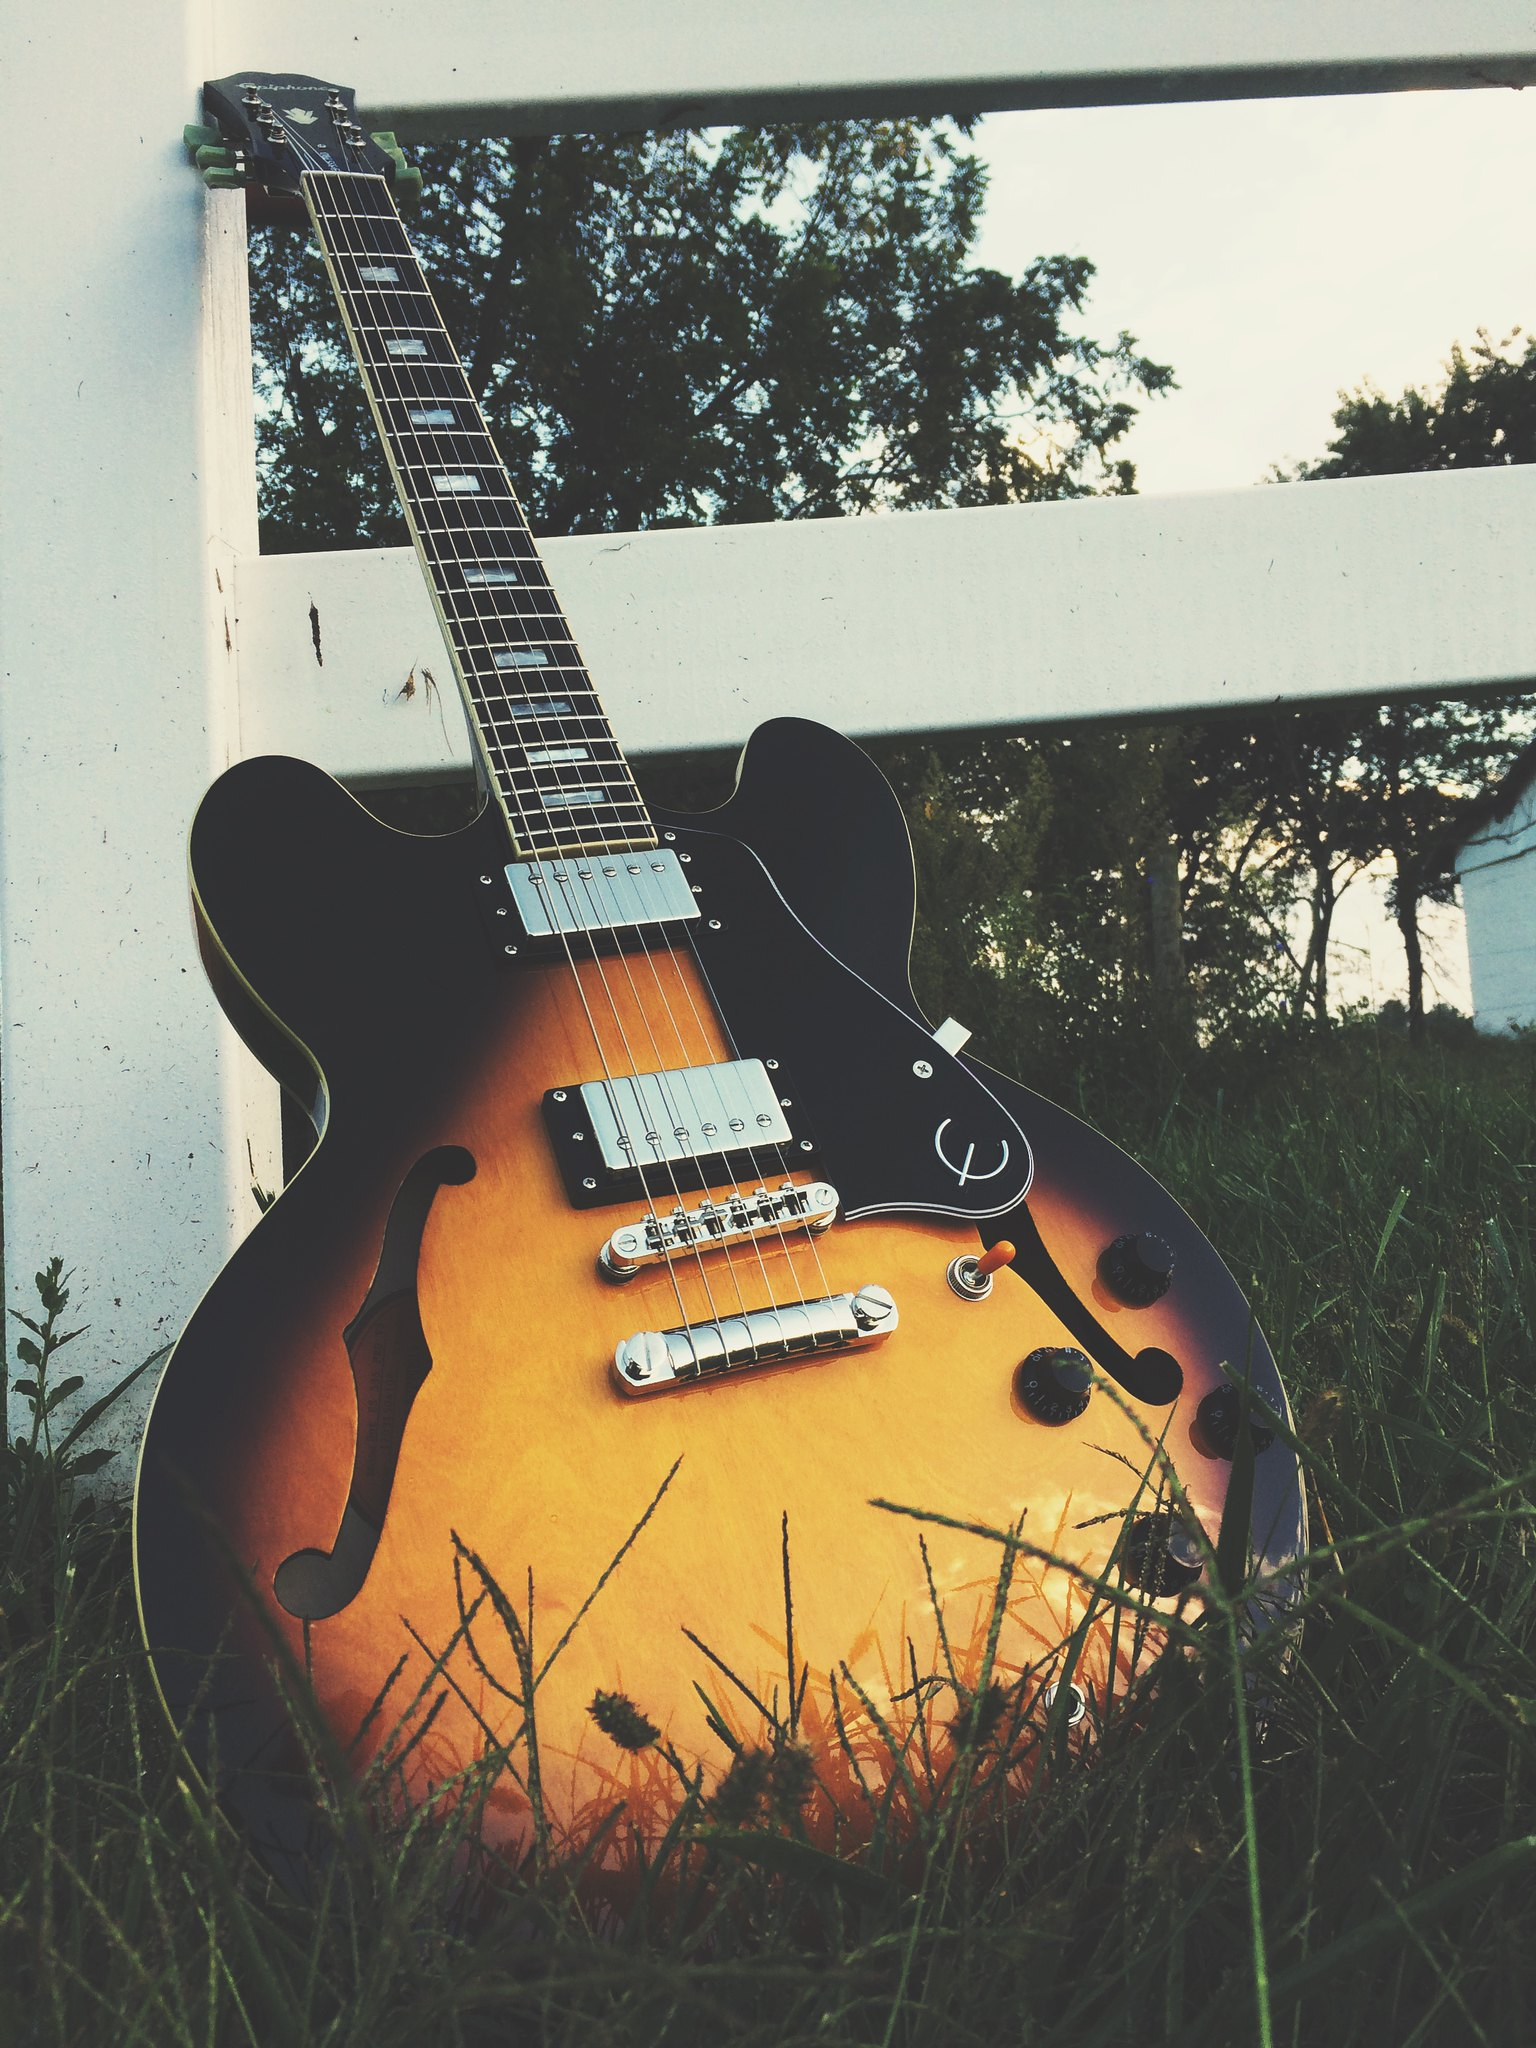 NGD Epiphone ES-335 Pro | The Gear Page